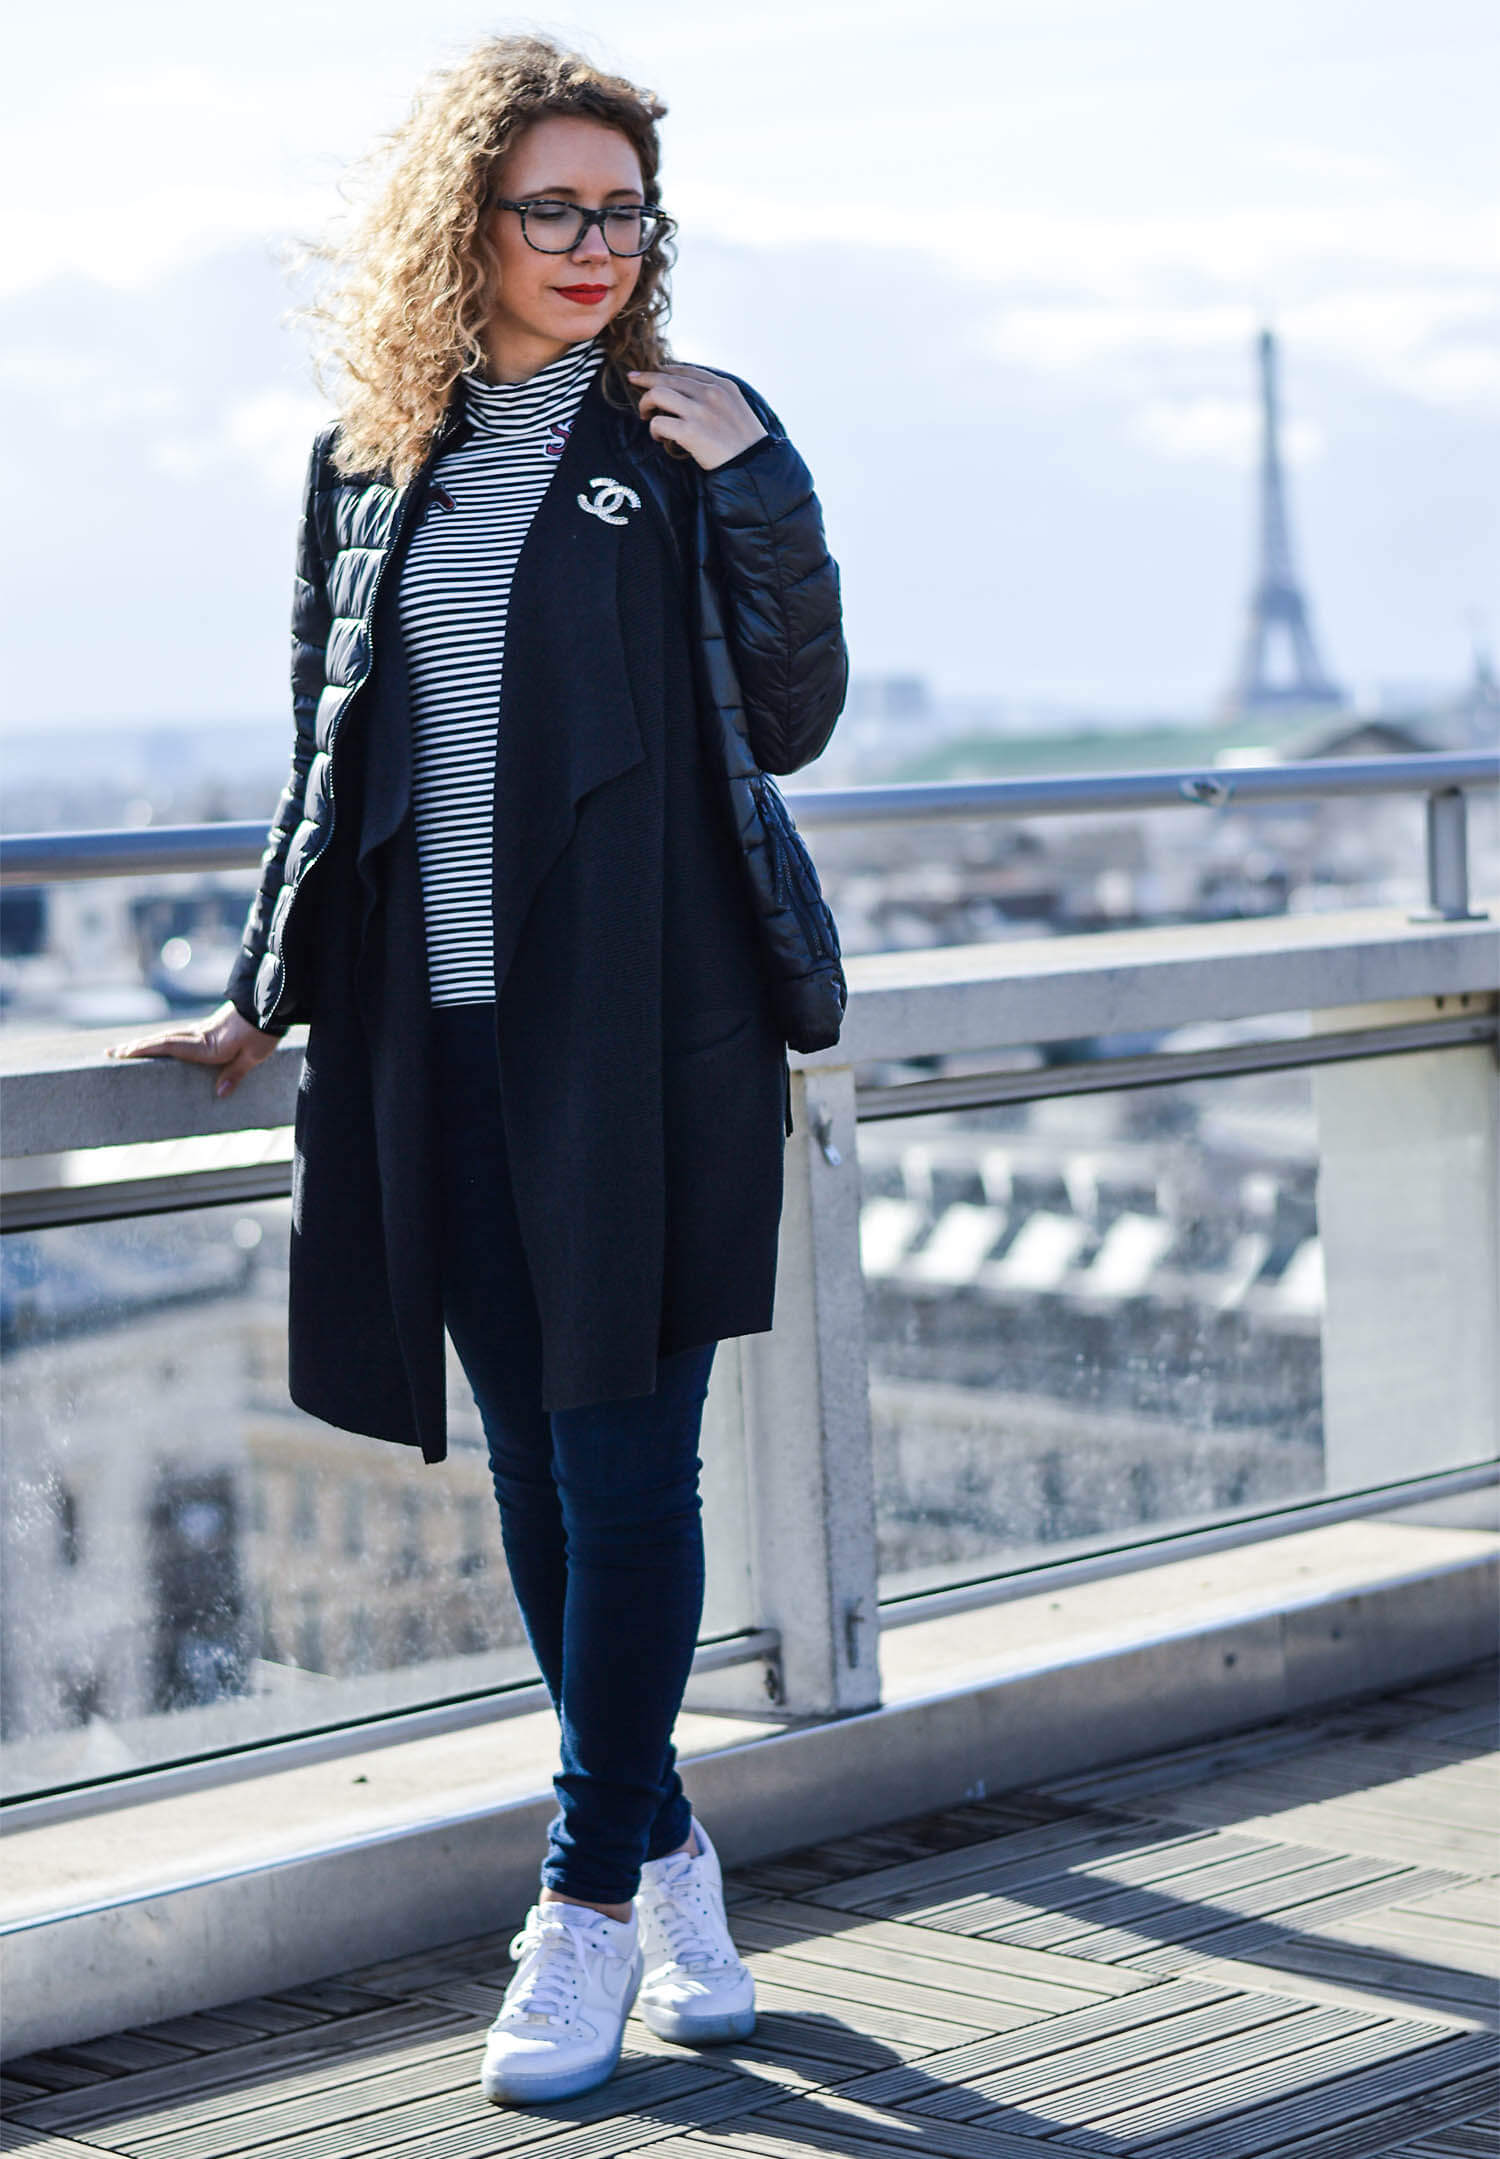 Kationette-fashionblog-paris-outfit-chanel-eiffeltower-nike-streetstyle-curls